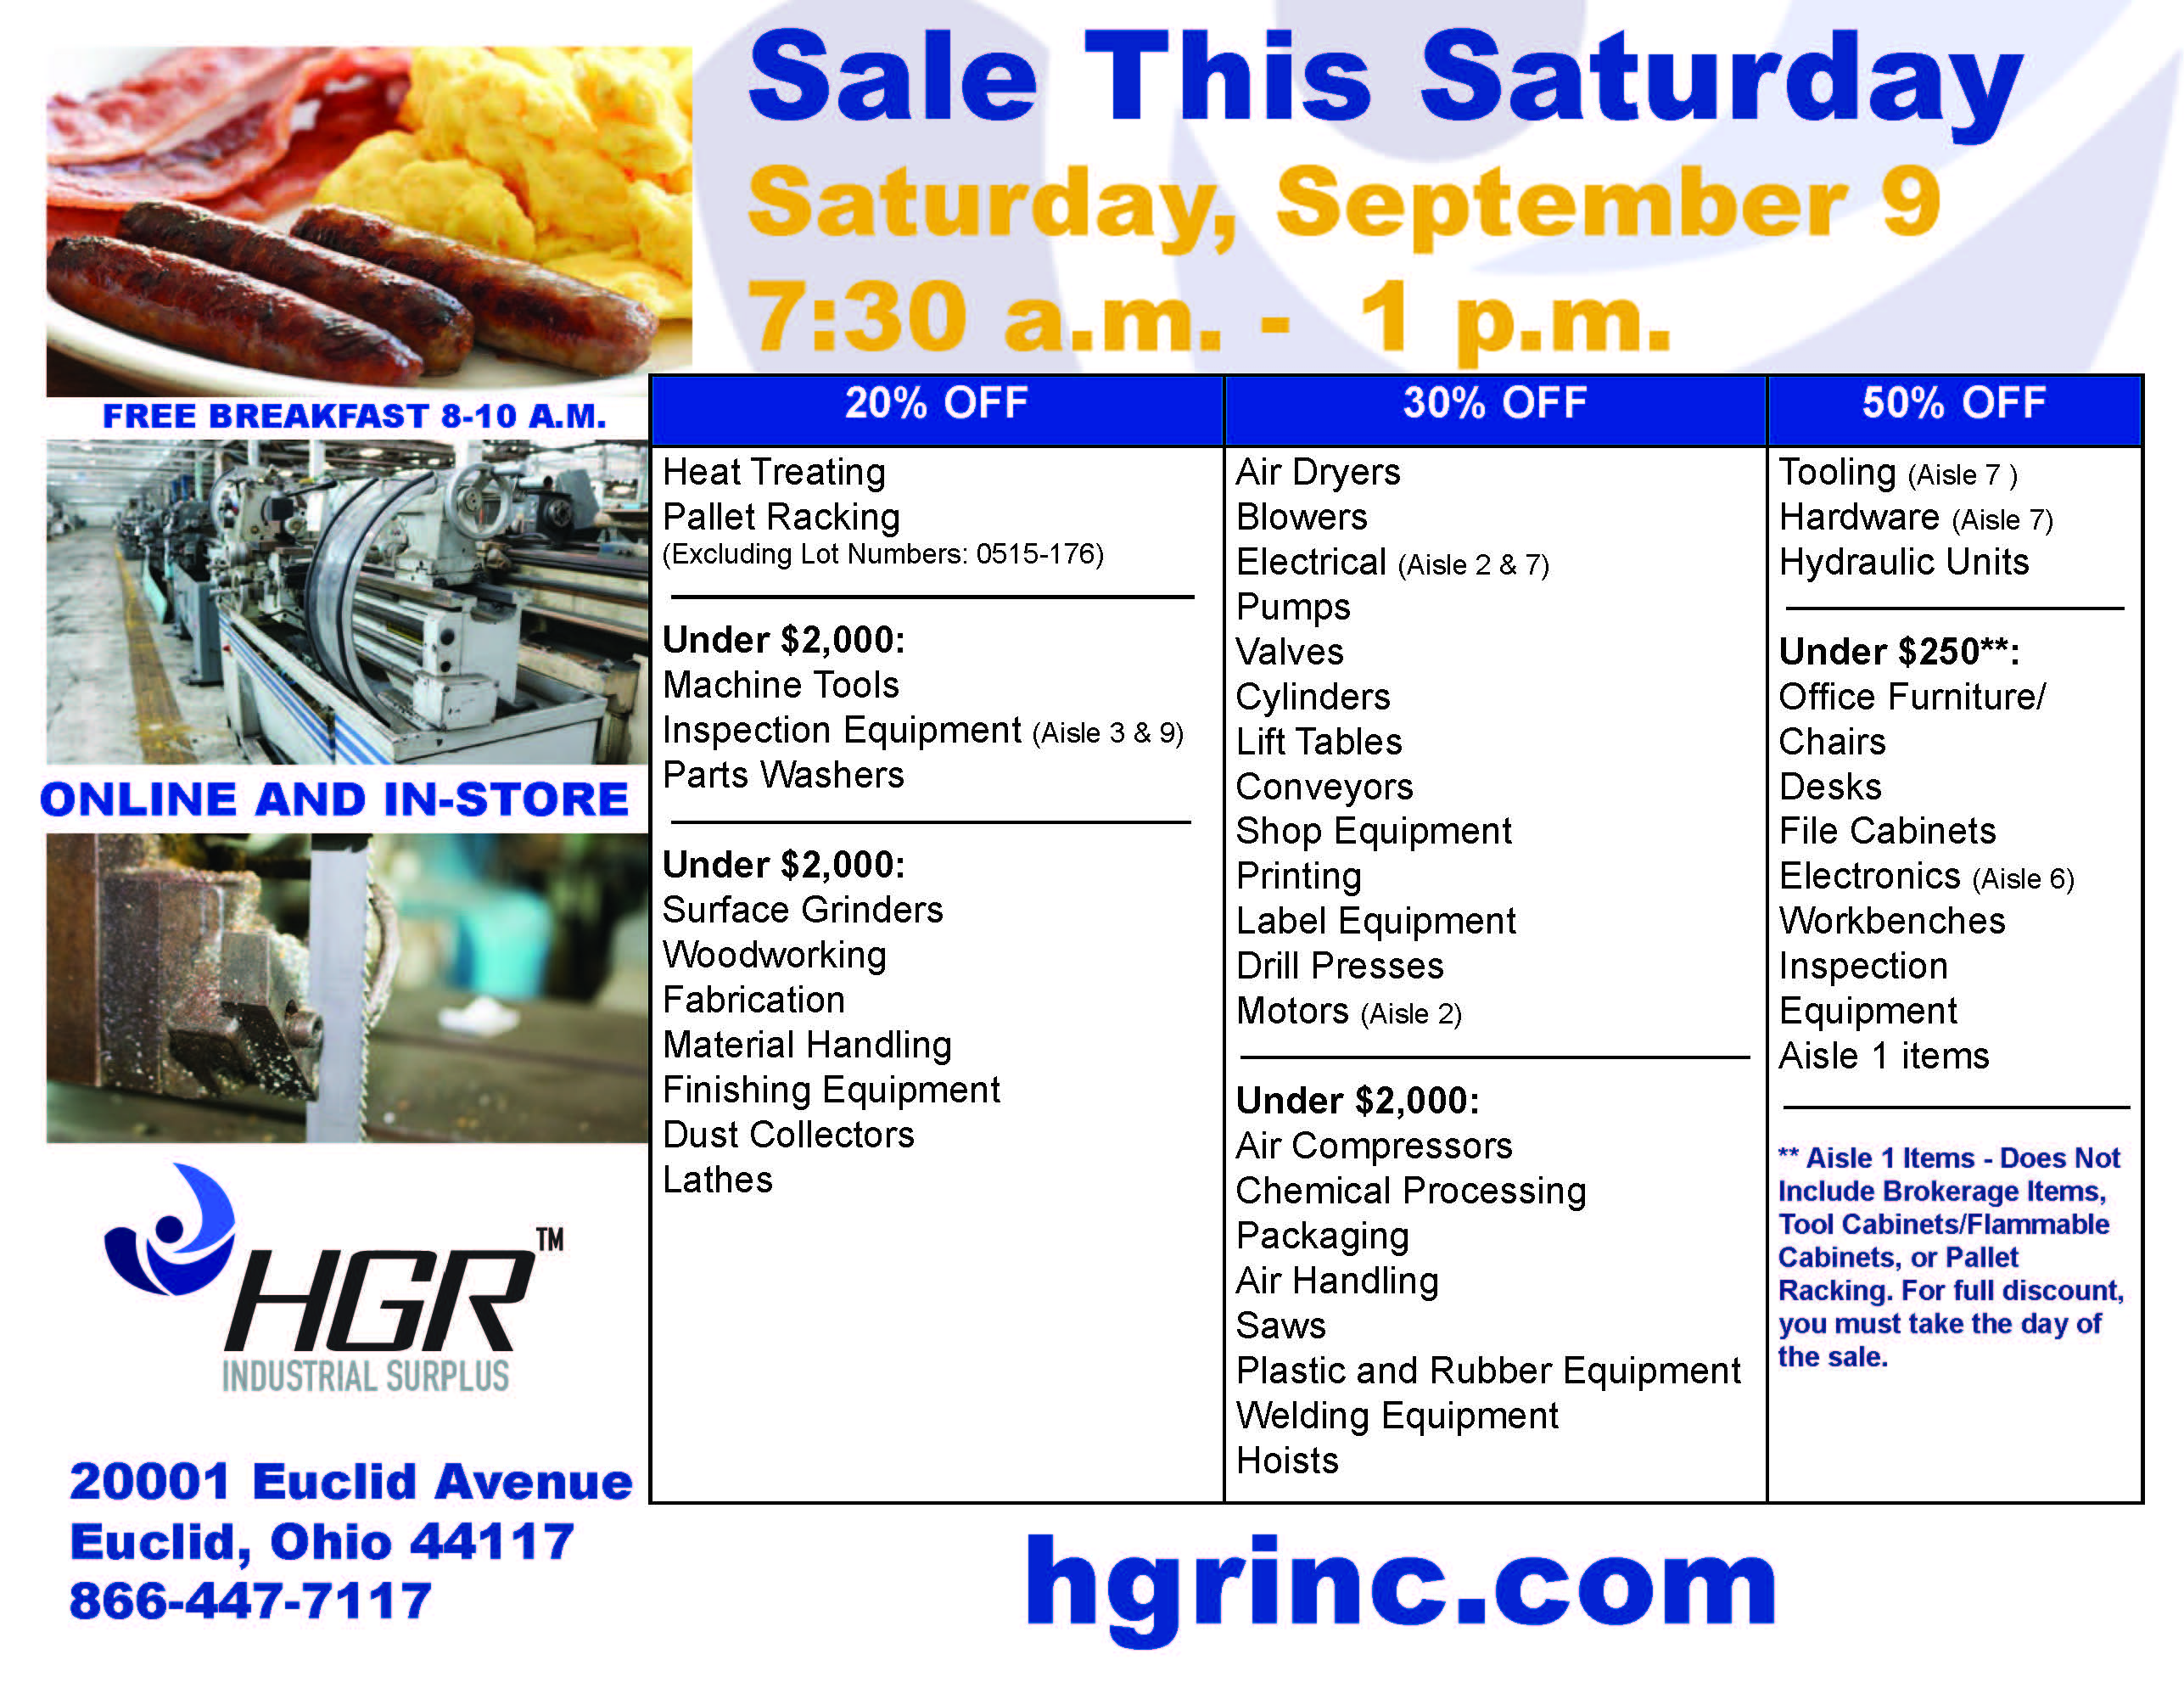 HGR Industrial Surplus Sept. 9, 2017 Saturday sale flyer